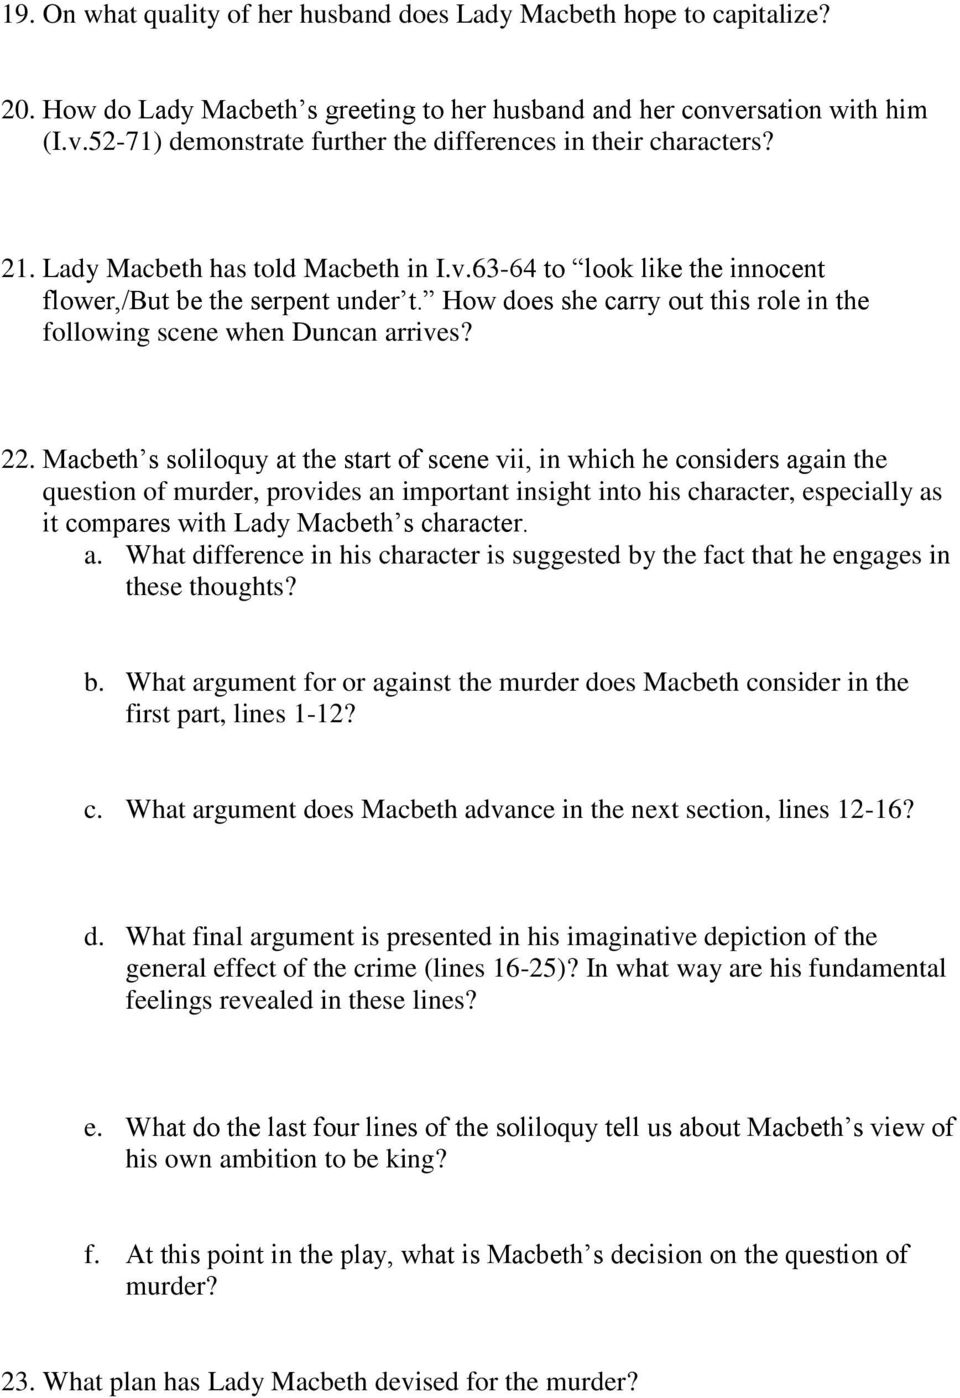 macbeth study guide questions pdf macbeth s soliloquy at the start of scene vii in which he considers again the